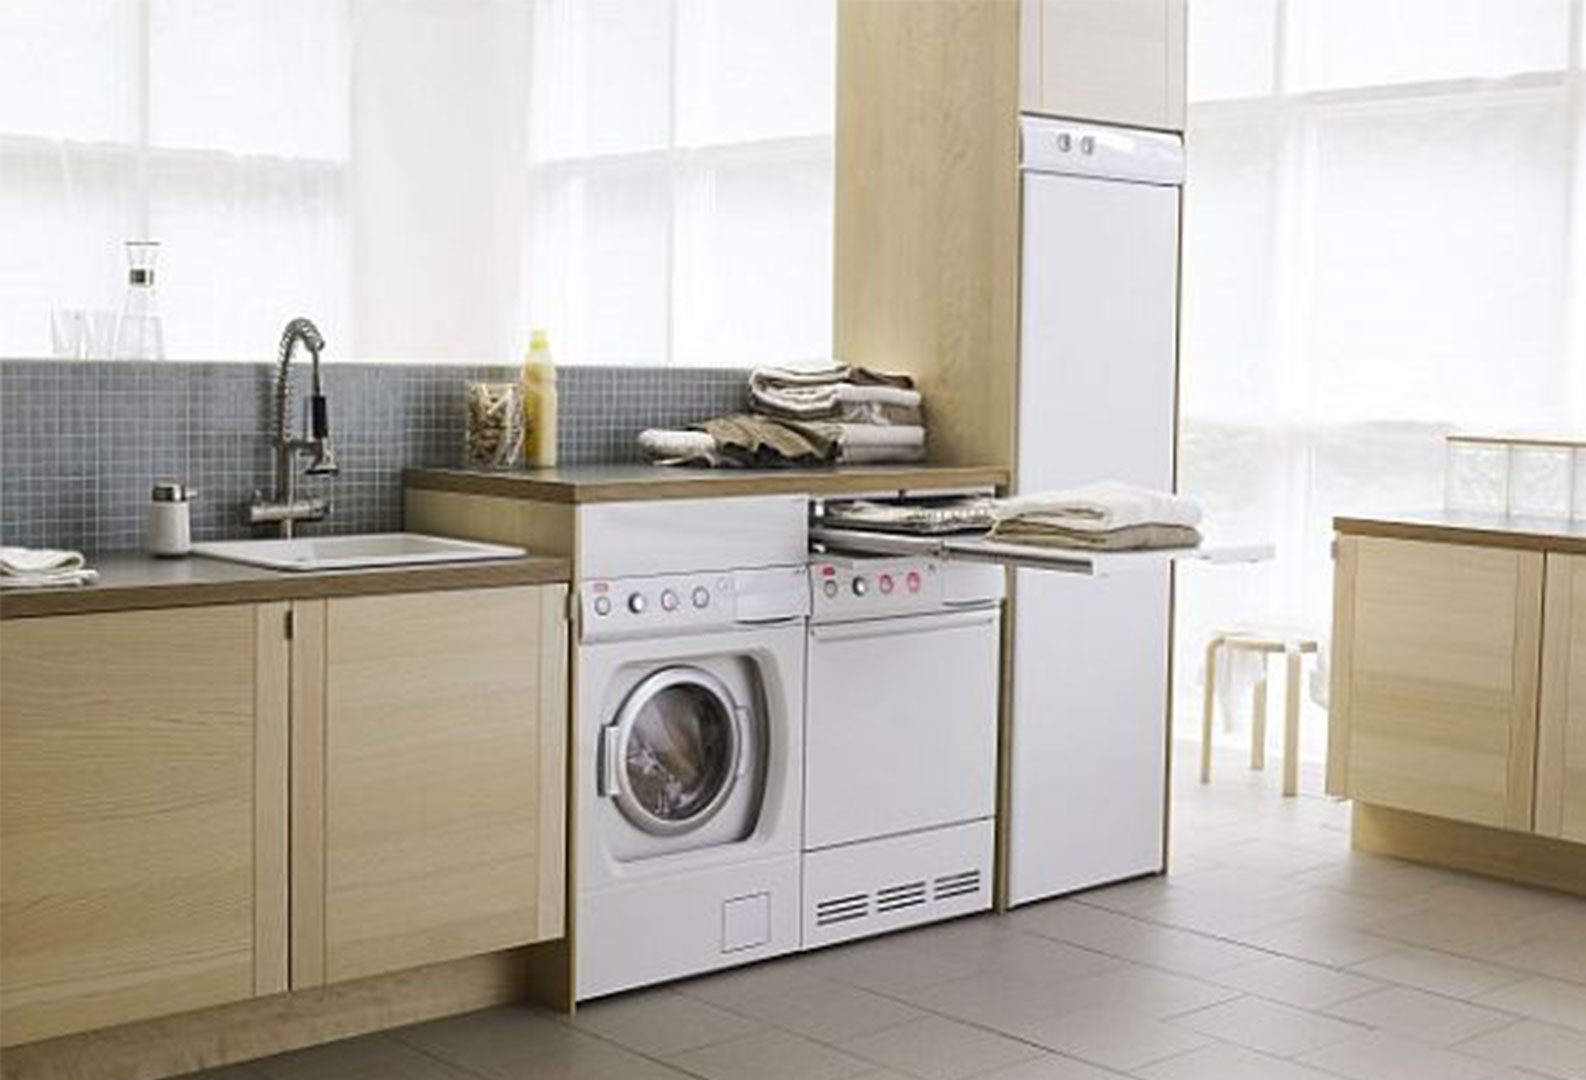 laundry room in kitchen ideas 15 id 233 ias praticas e funcionais de lavanderia 25015